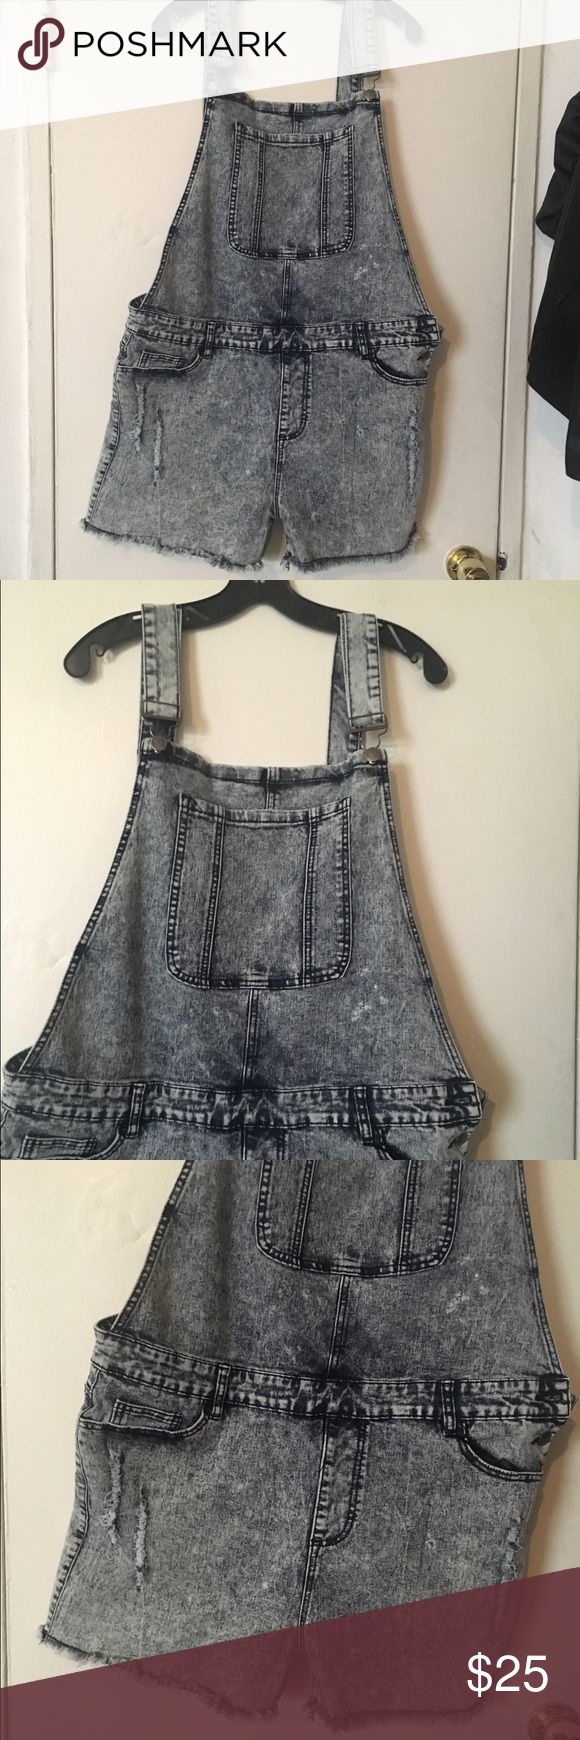 Plus size shorts overalls / jumper siz 24 distress Plus size distressed shorts overalls with fraying bottom. Size 24 can fit 20 to 22 as well. It has some stretch to it. Shorts